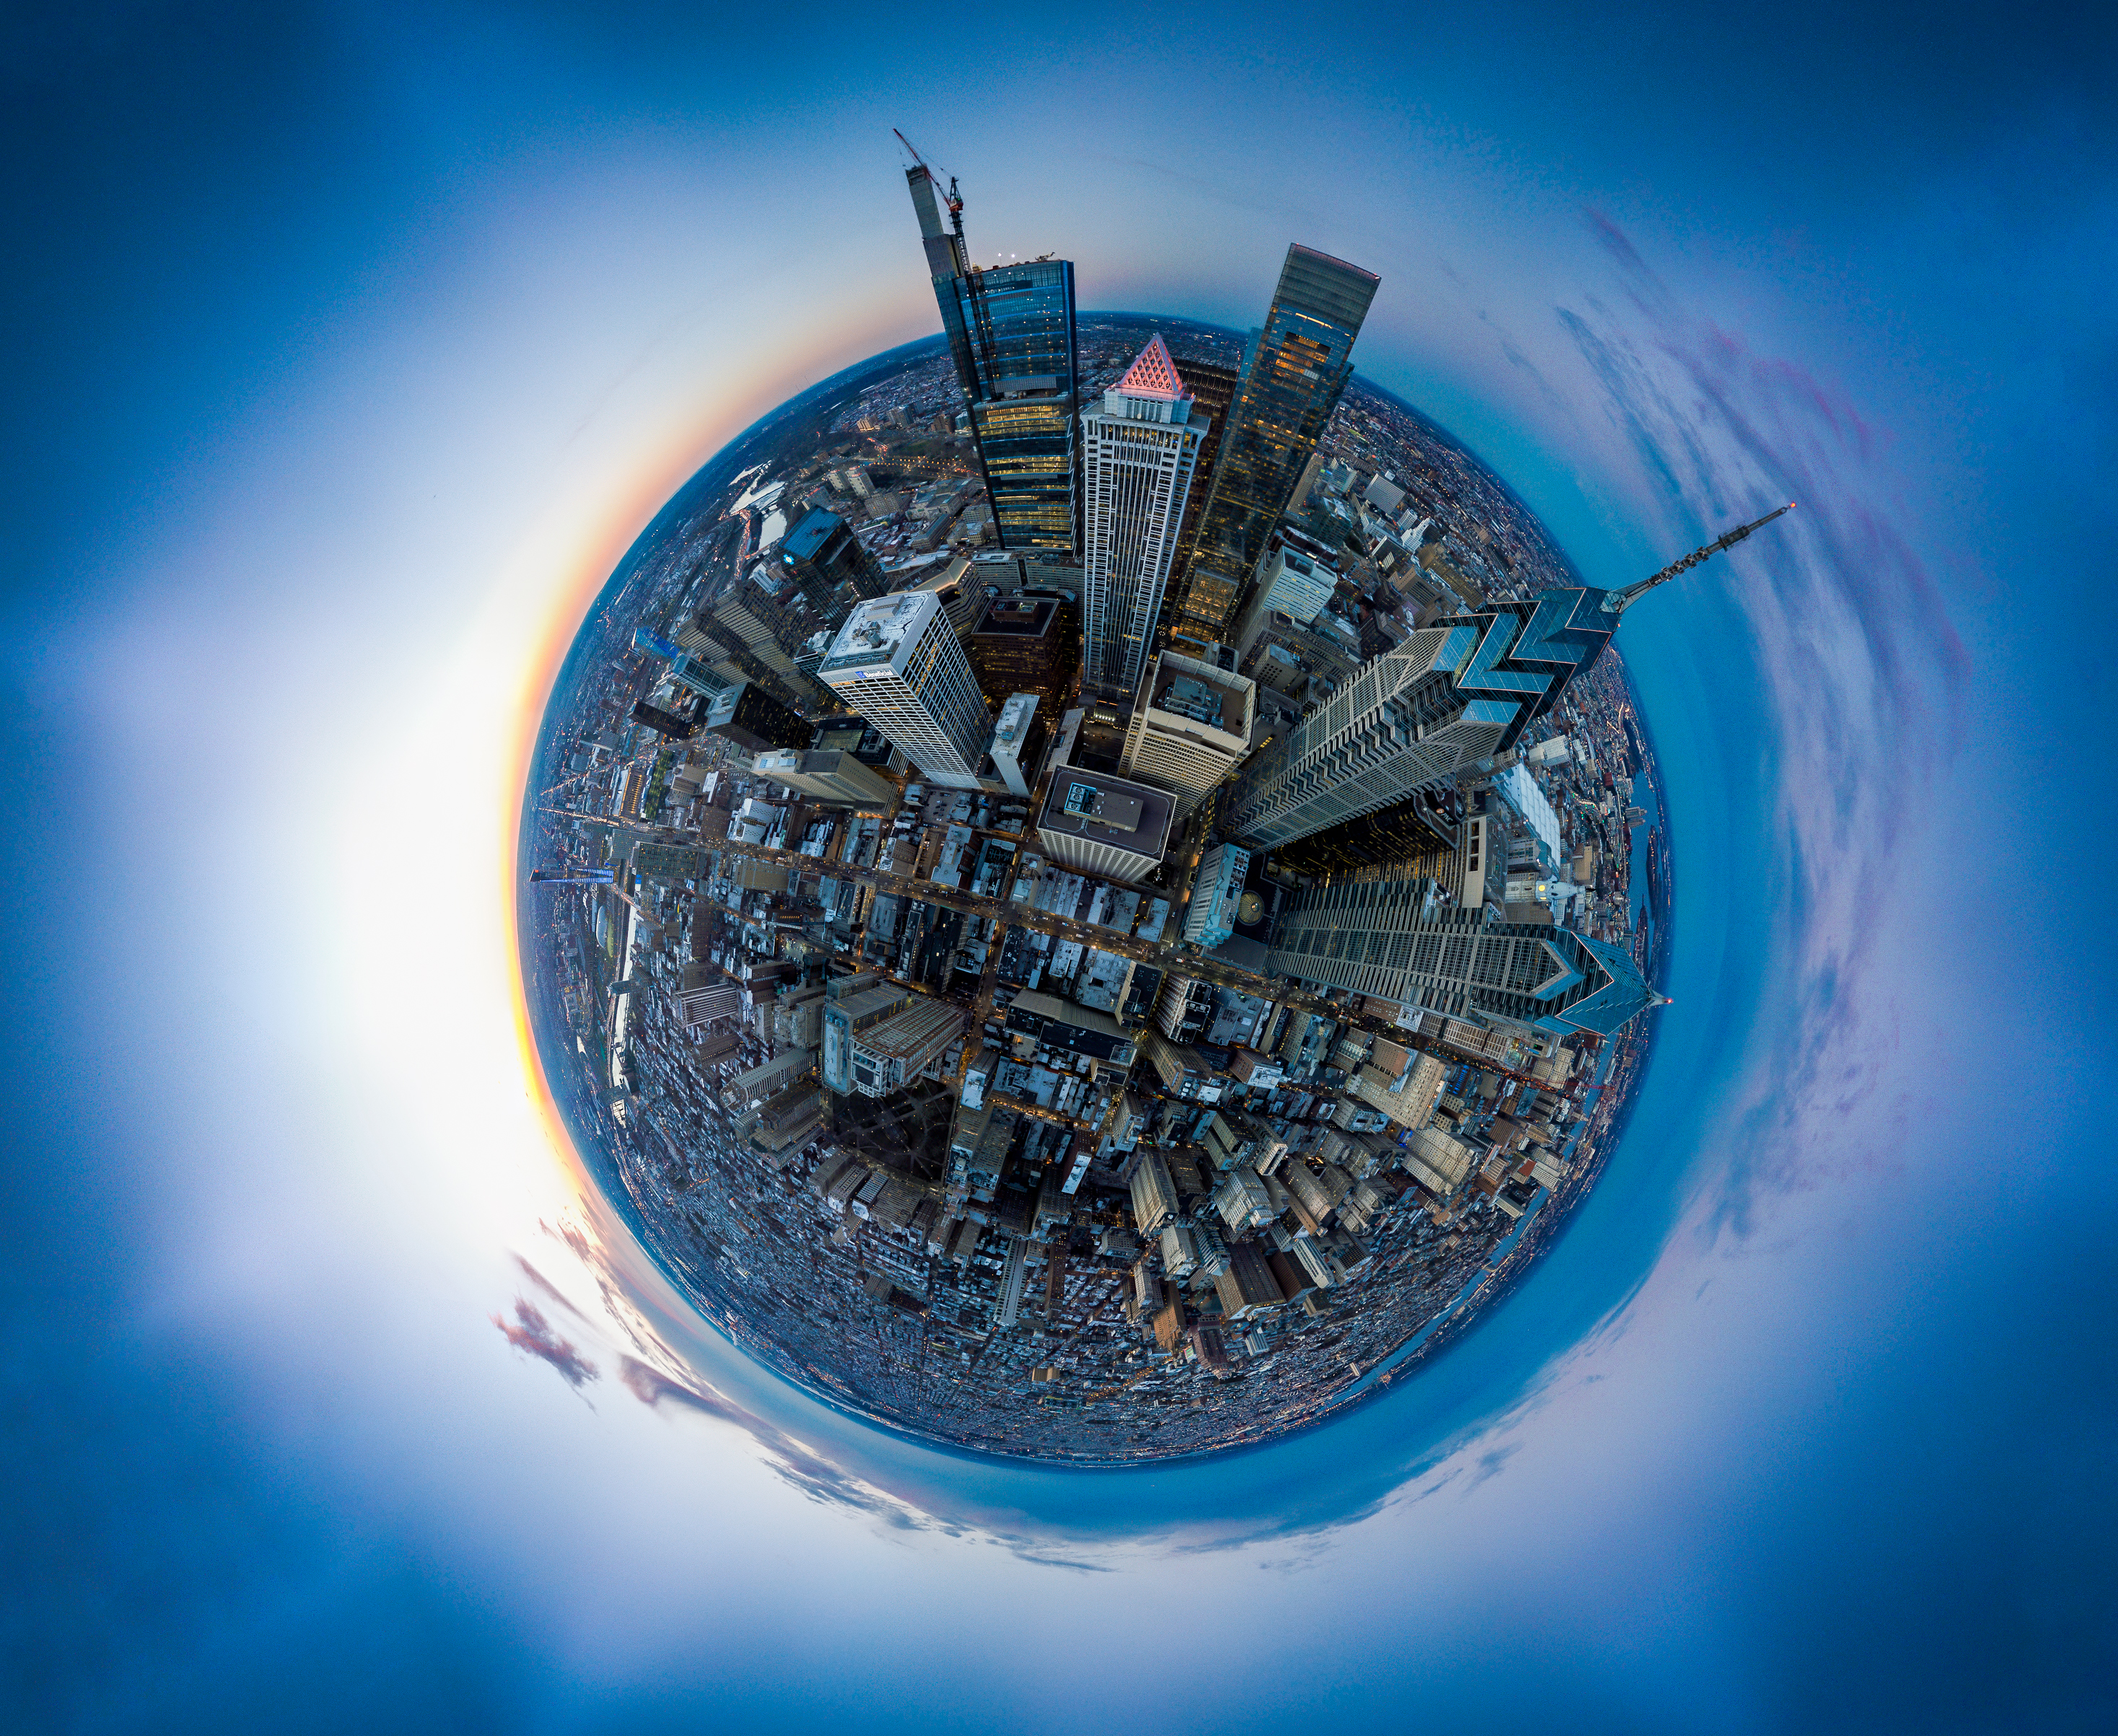 Philly_Sphere_